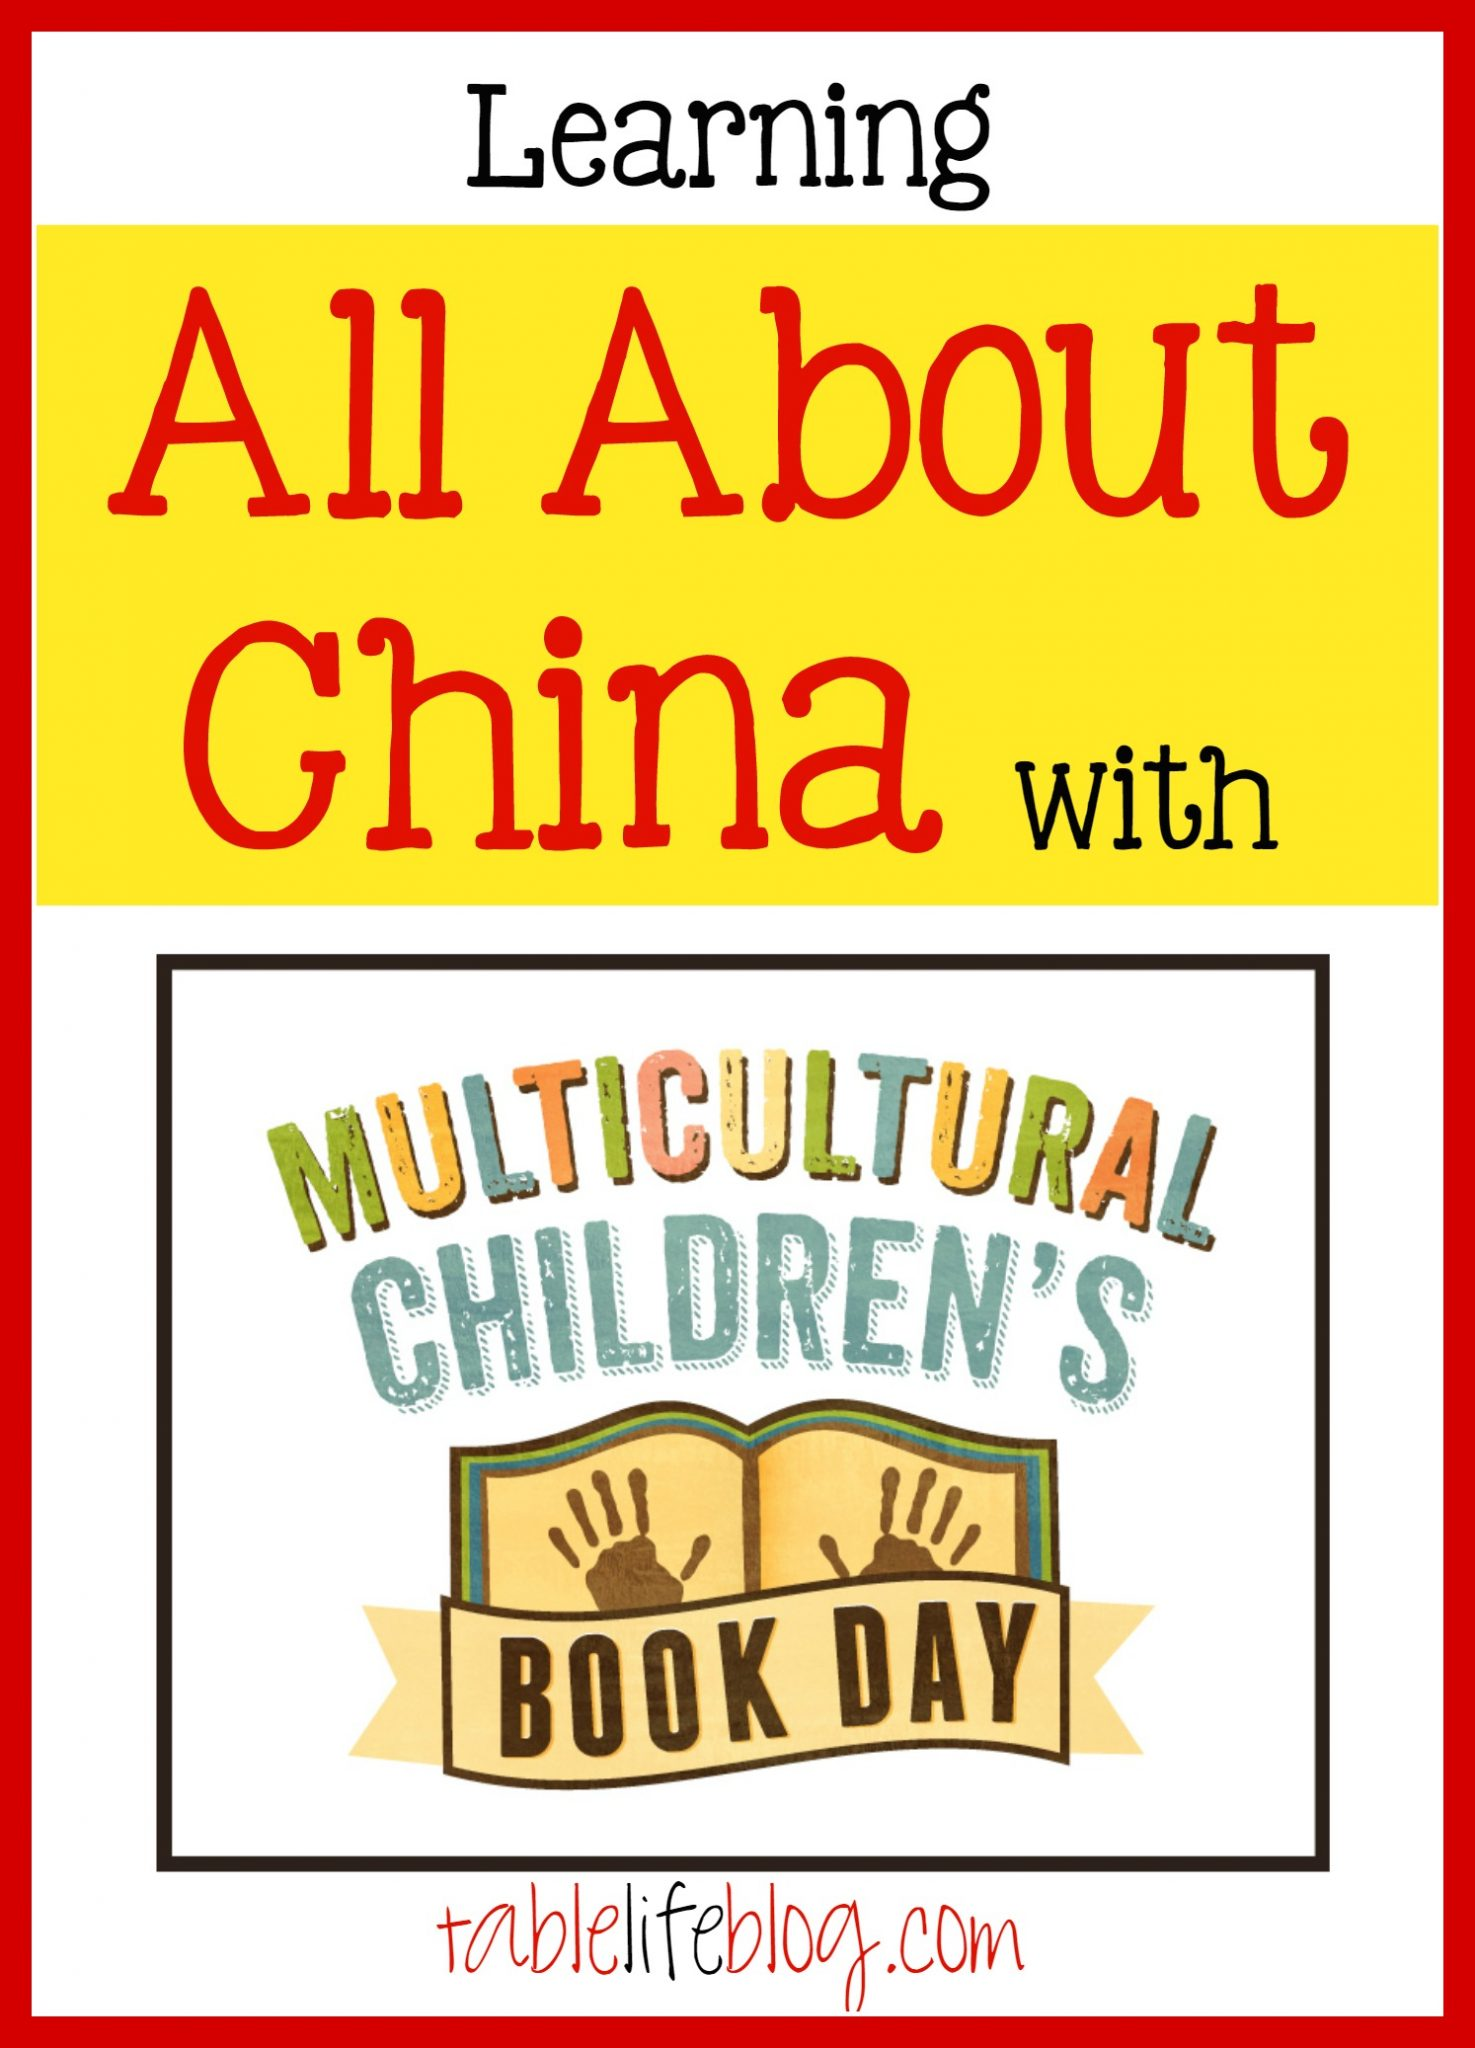 Learning All About China with Multicultural Children's Book Day